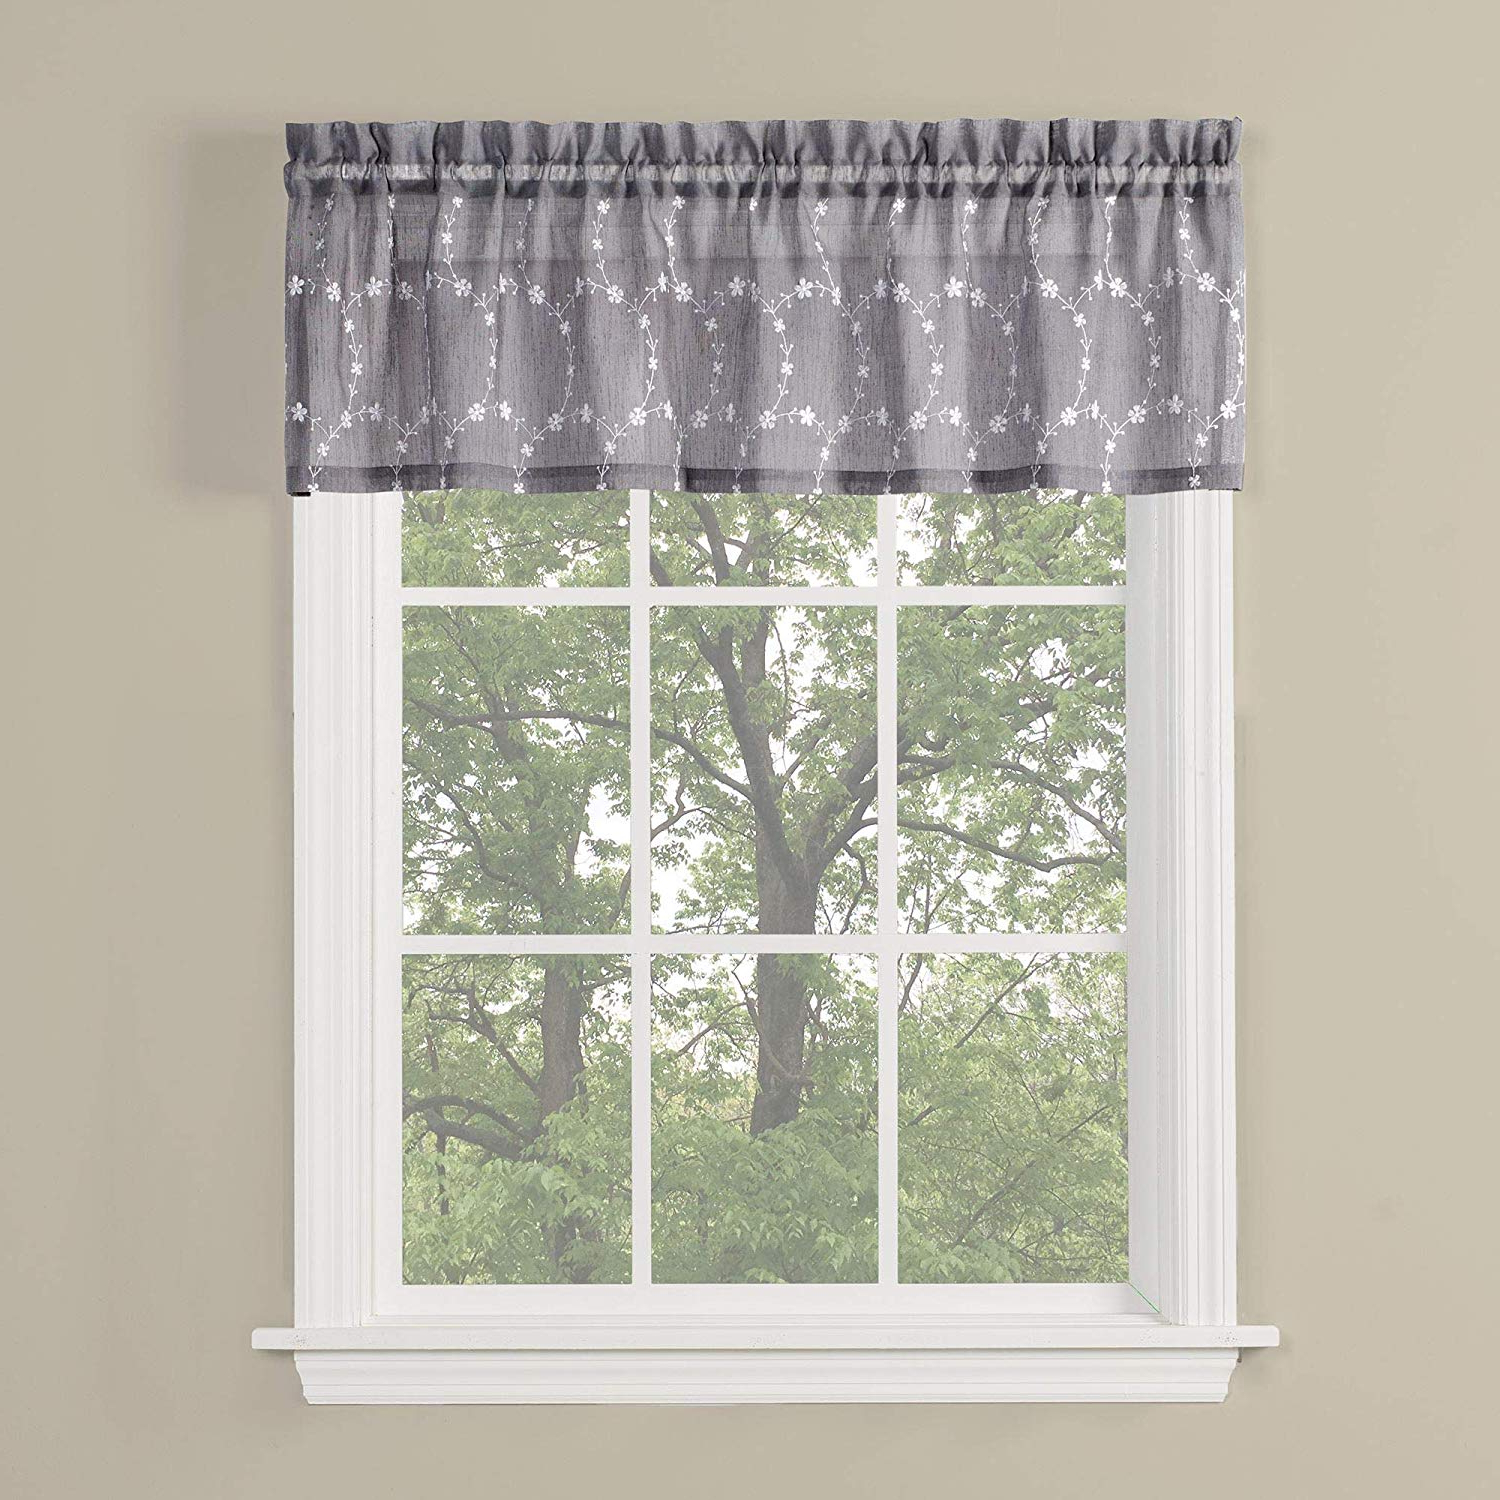 Newest Dove Gray Curtain Tier Pairs Intended For Skl Homesaturday Knight Ltd (View 6 of 20)